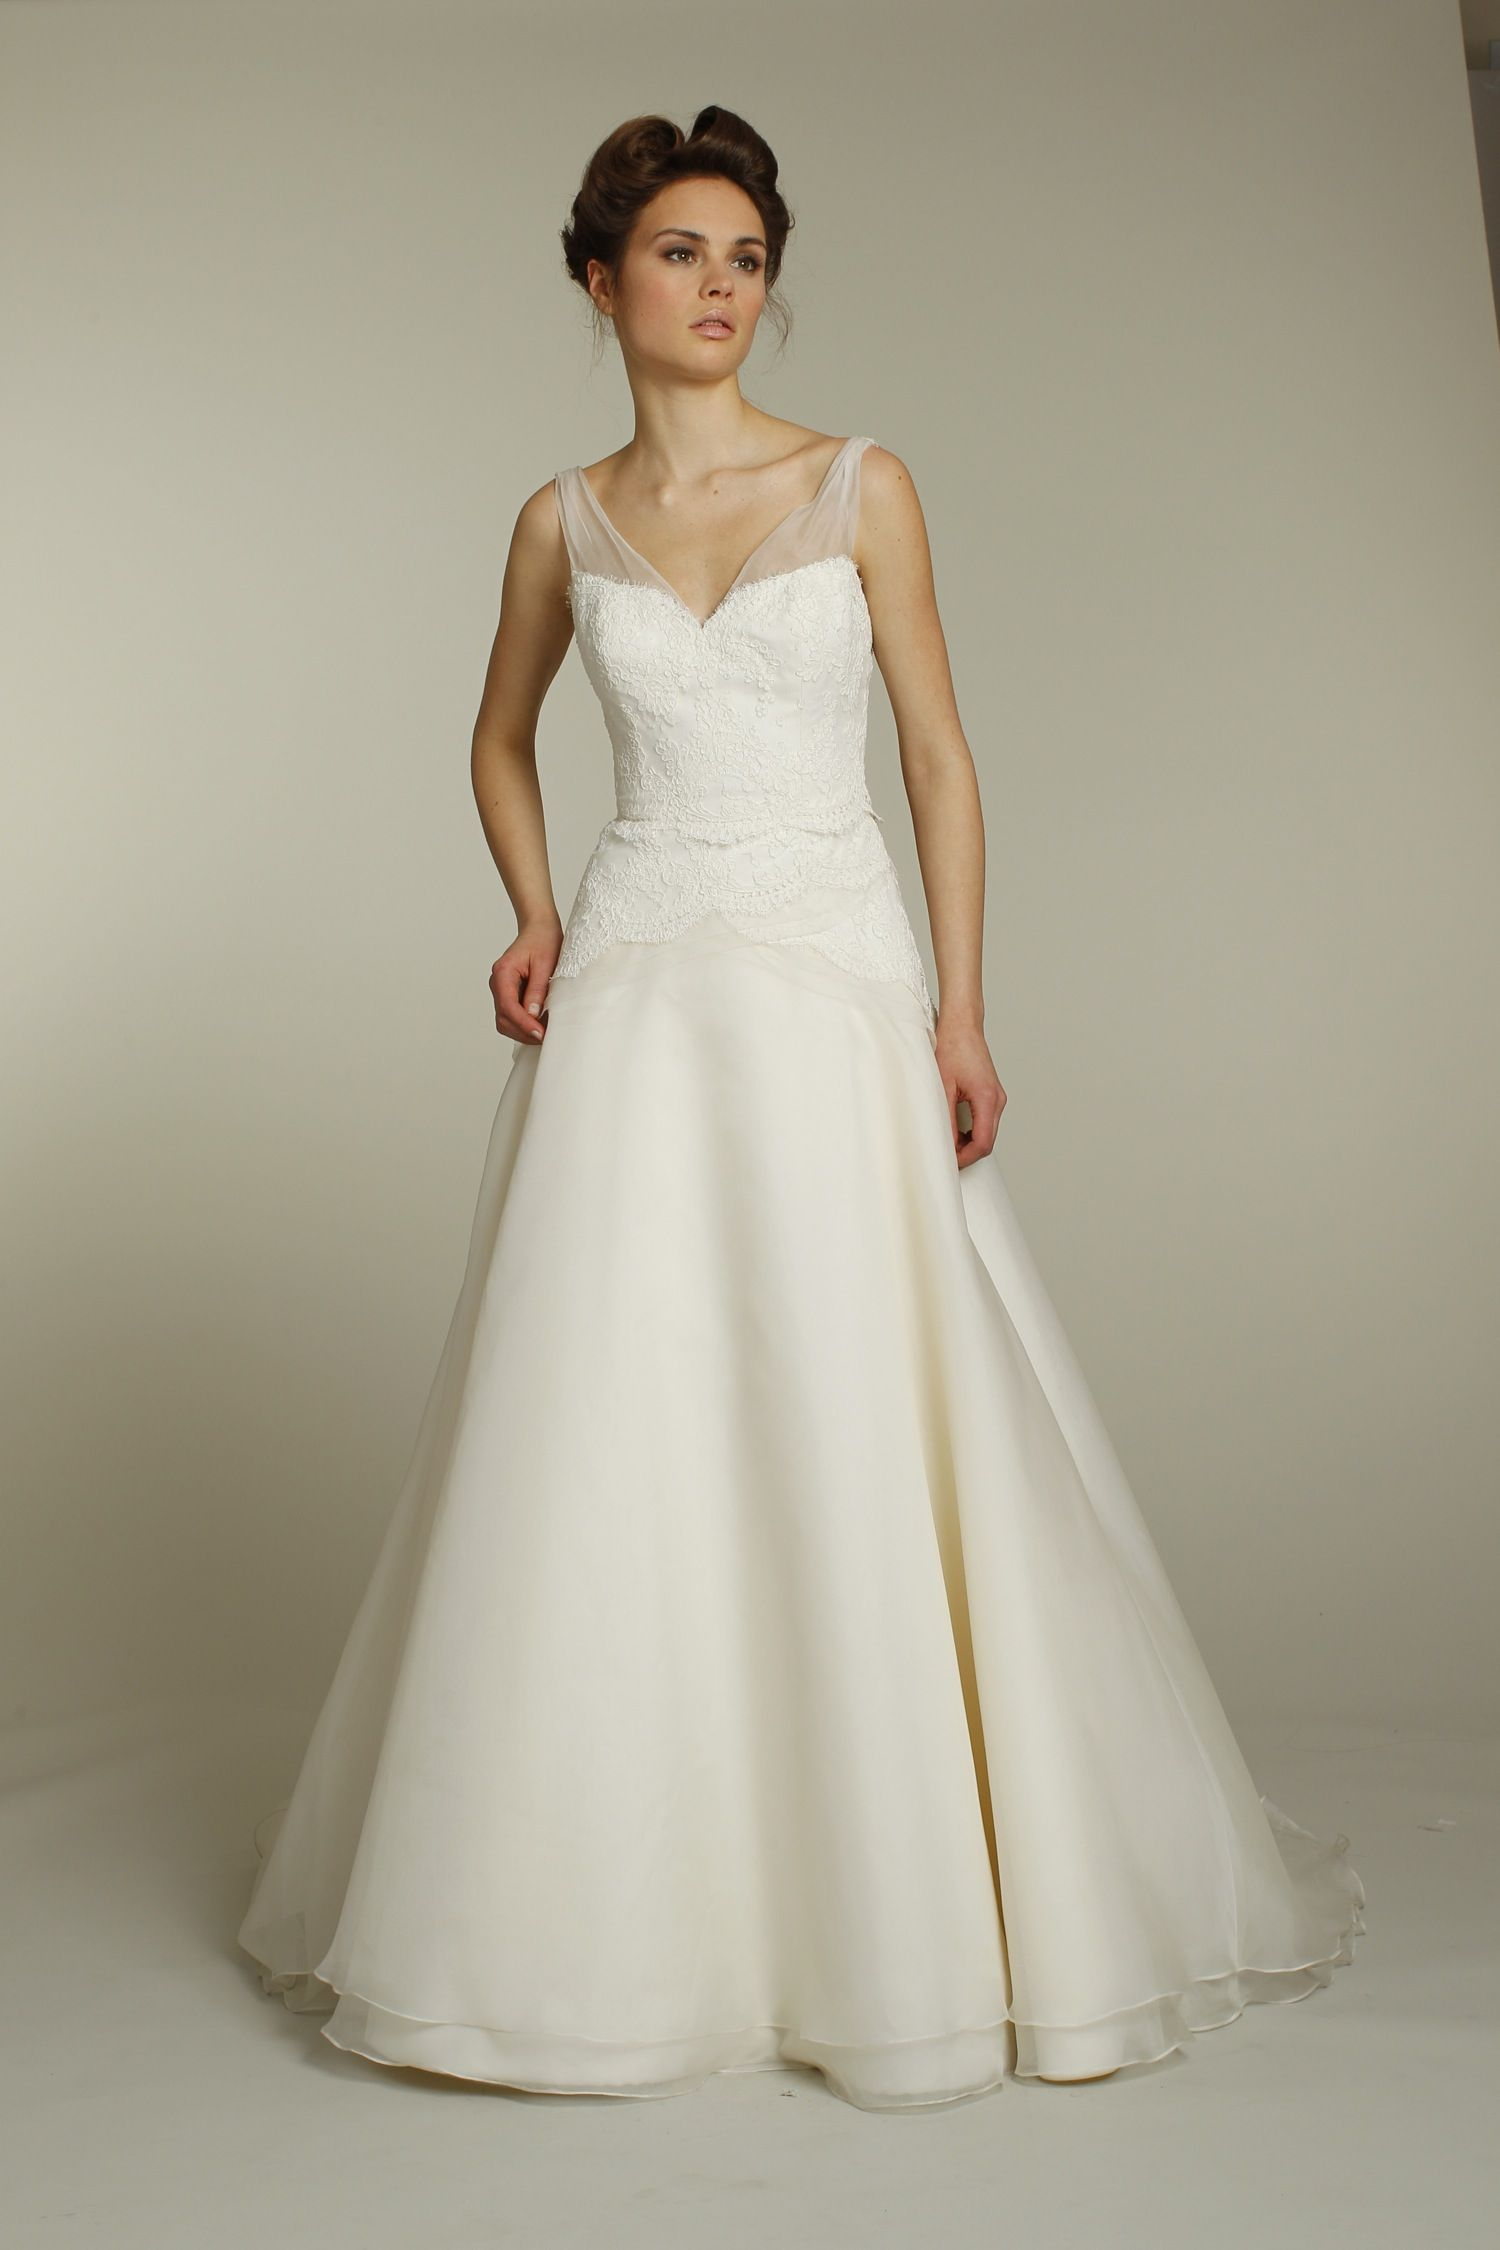 Classic ivory a-line wedding dress with lace applique and sheer illusion  straps 3ebe163e9a17